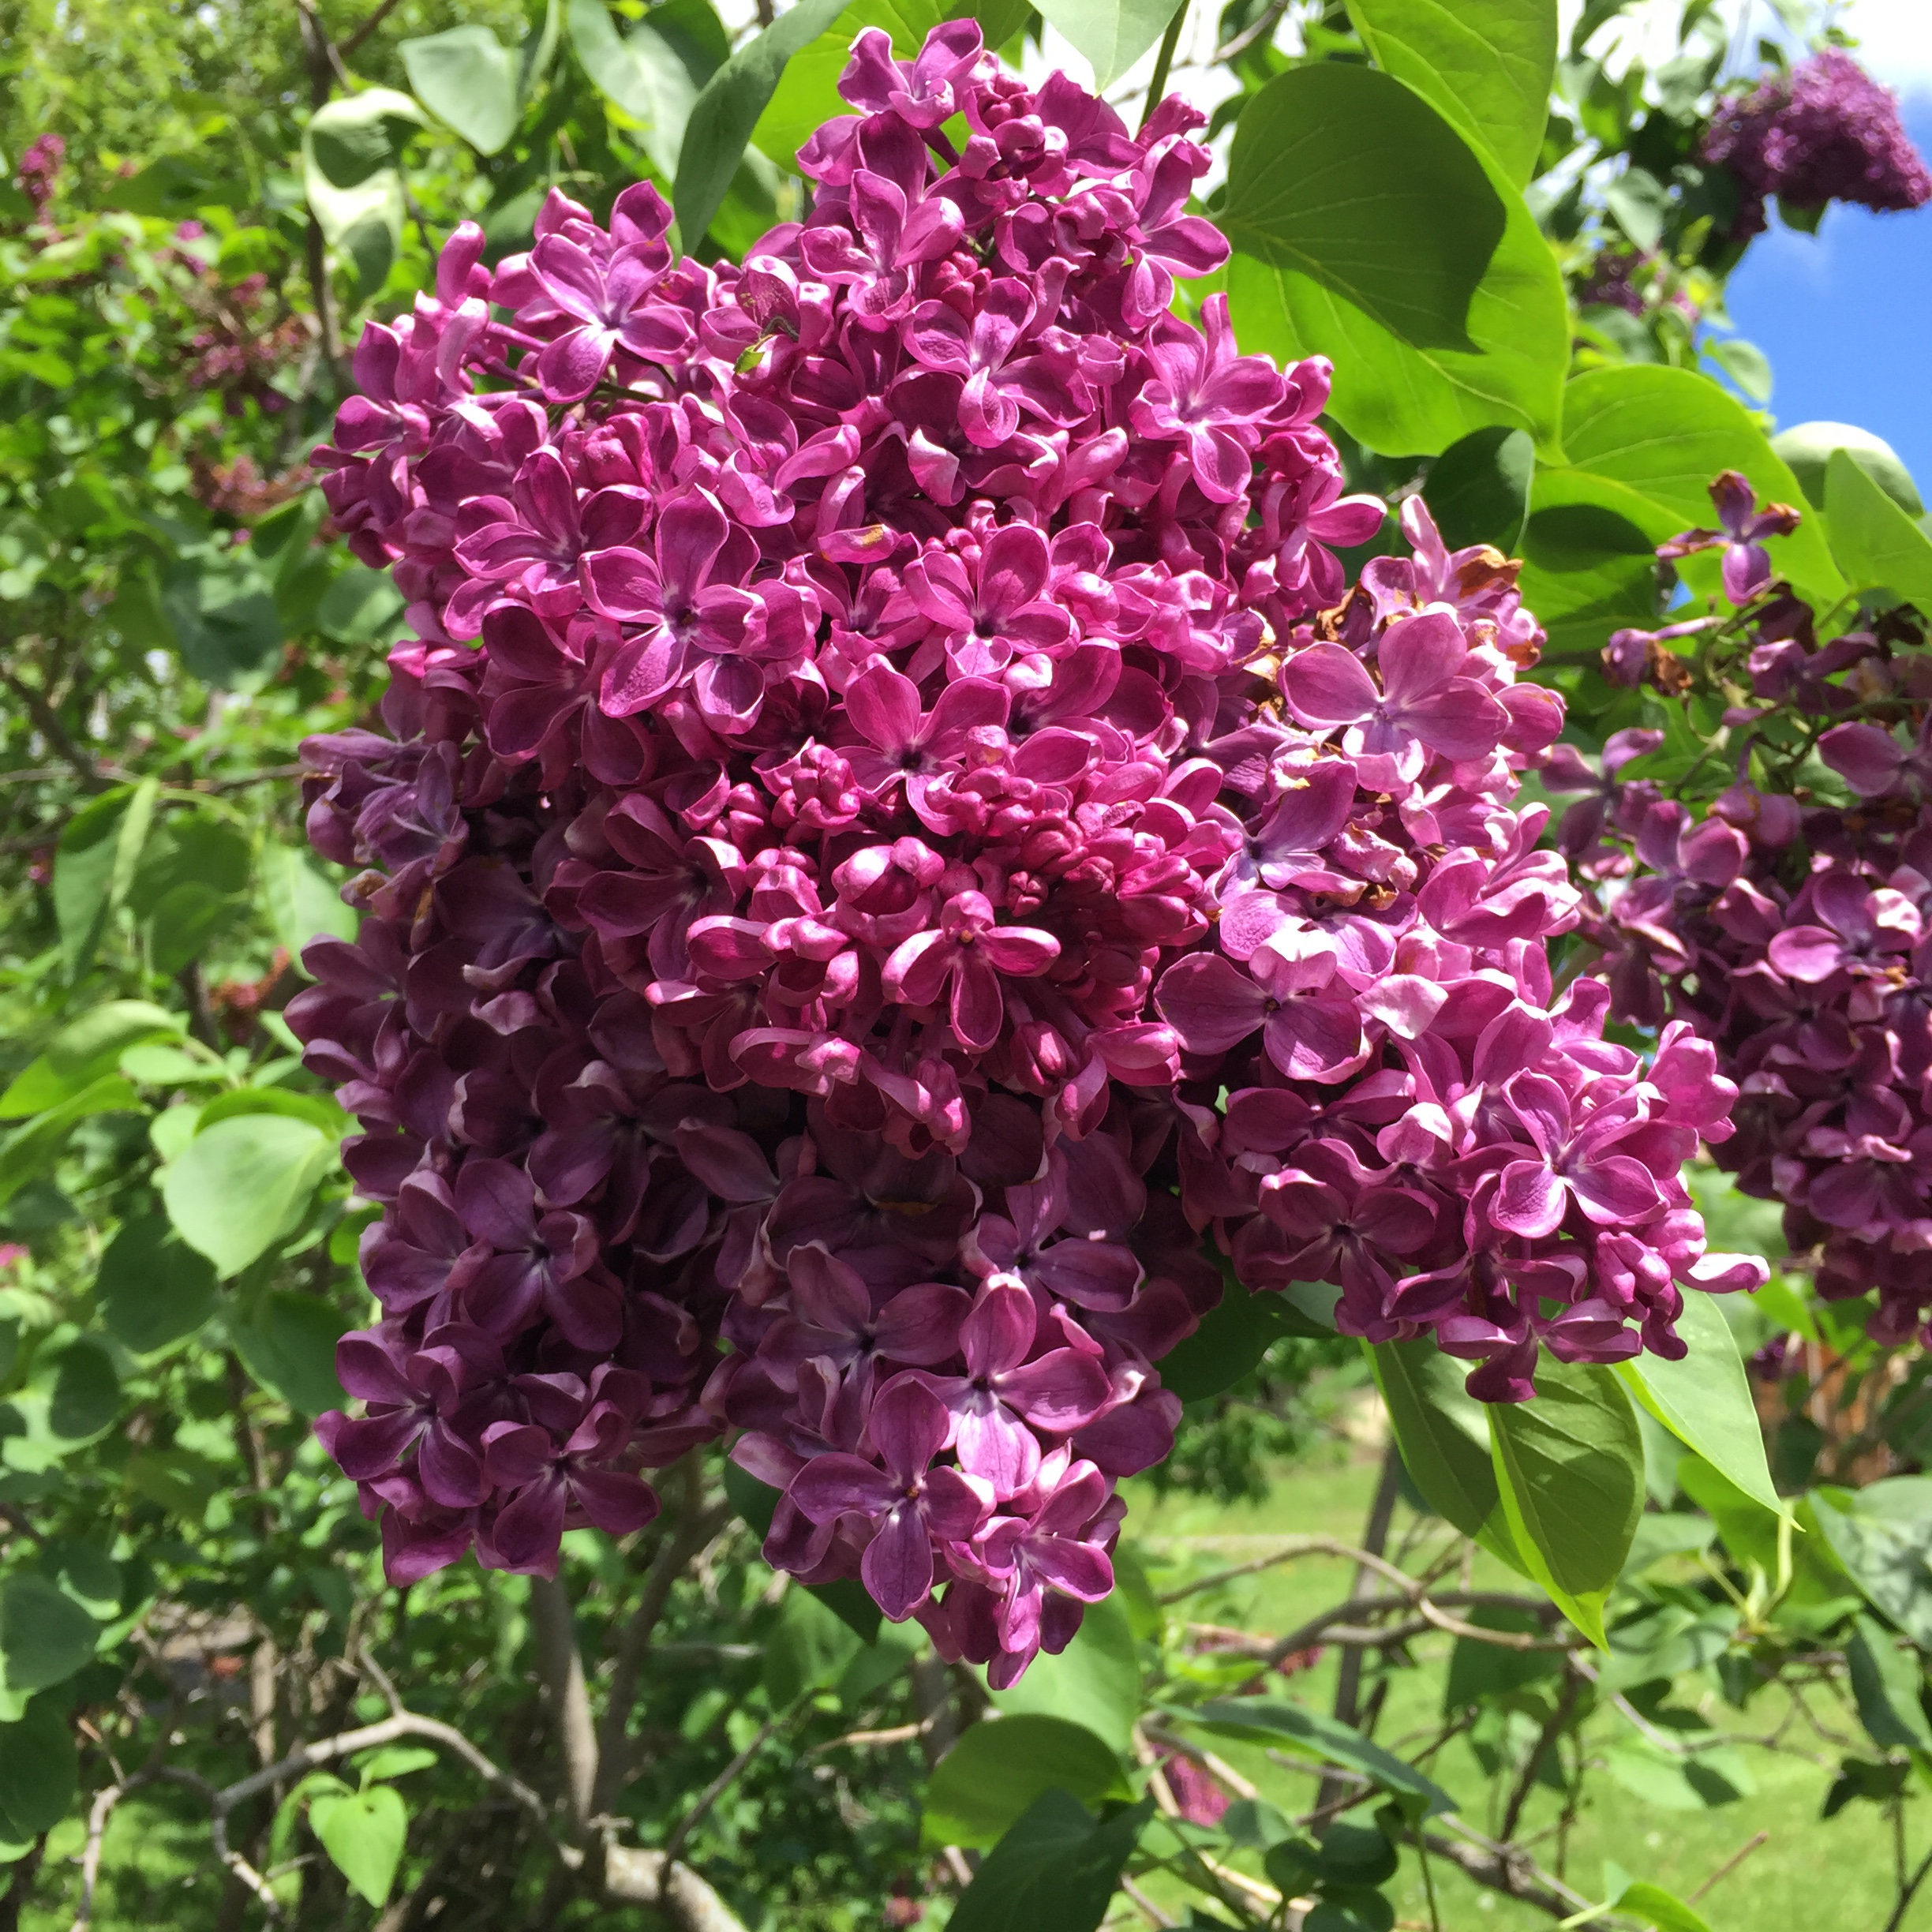 Lilac are early to bloom and quickly over. Sort of like our lives in the larger frame of the universe.